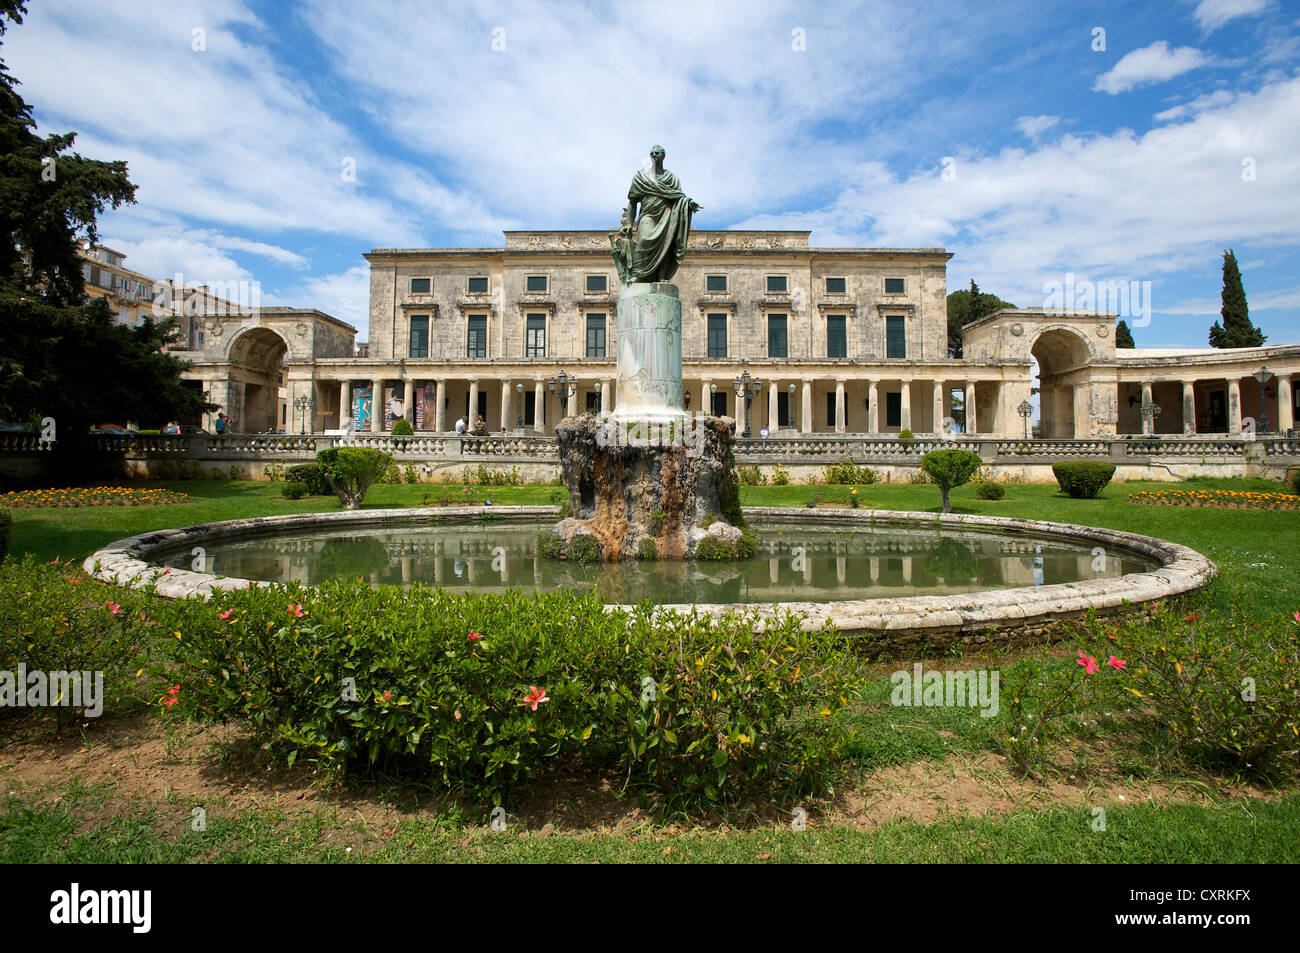 Old Palace at the Museum for Asian Art in Corfu Town, Kerkyra, Corfu, Ionian Islands, Greece, Europe - Stock Image